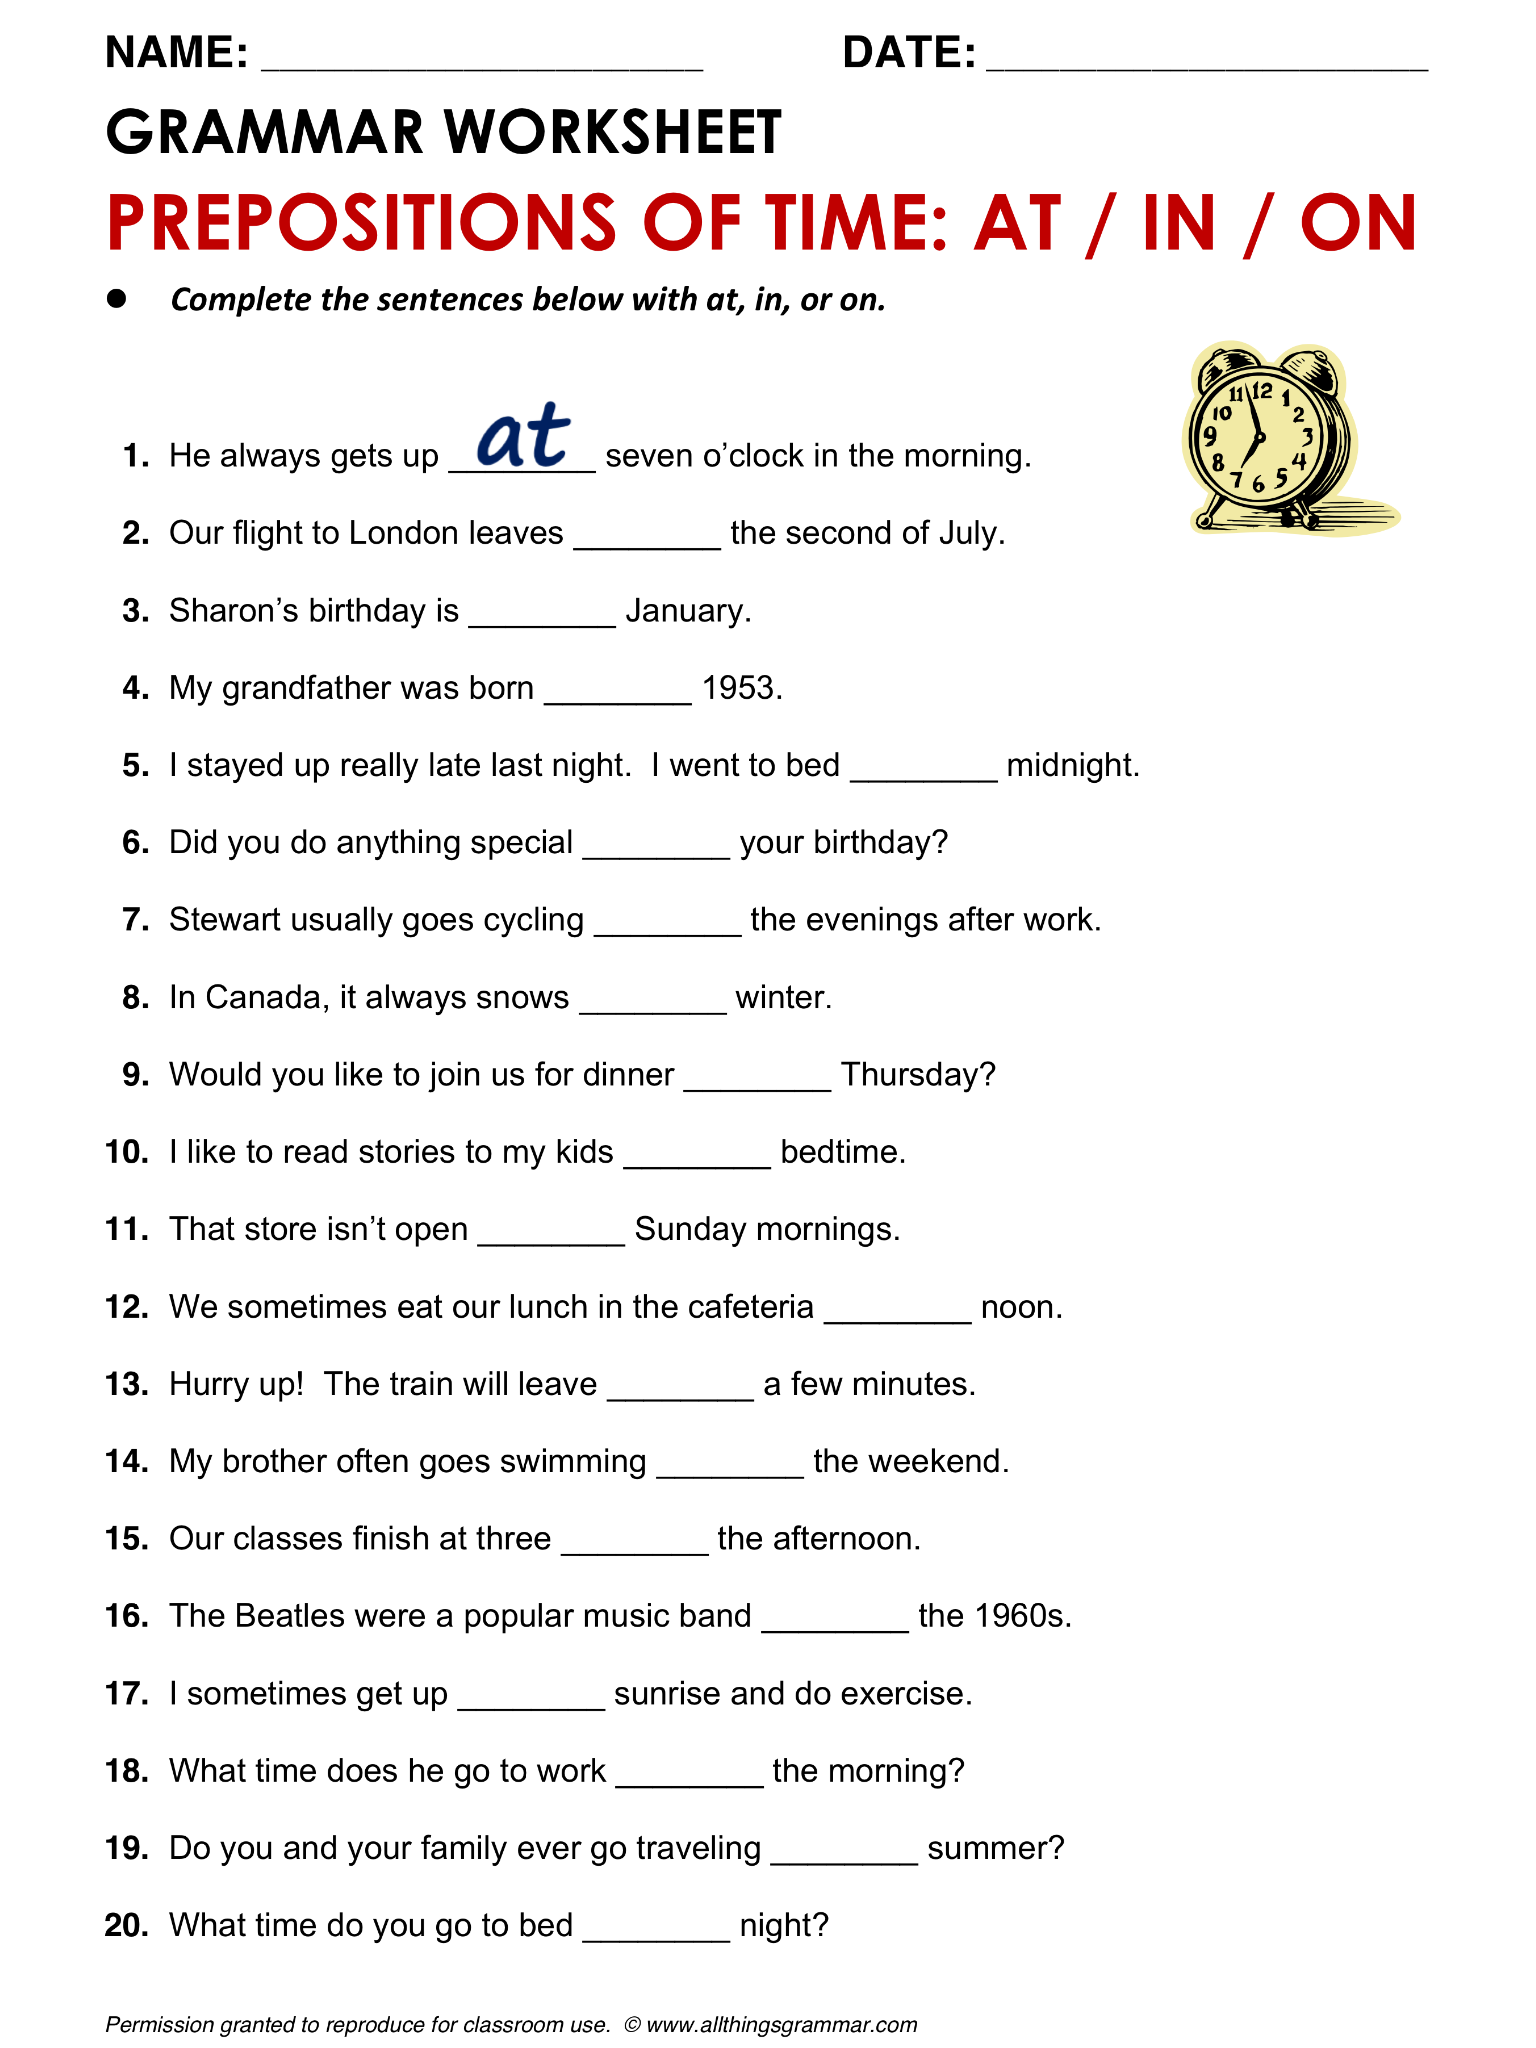 worksheet Prepositional Phrases Worksheets english grammar prepositions of time at in on www this will help students to learn prepositional phrases and how they should be used i would probably use as a take home activity